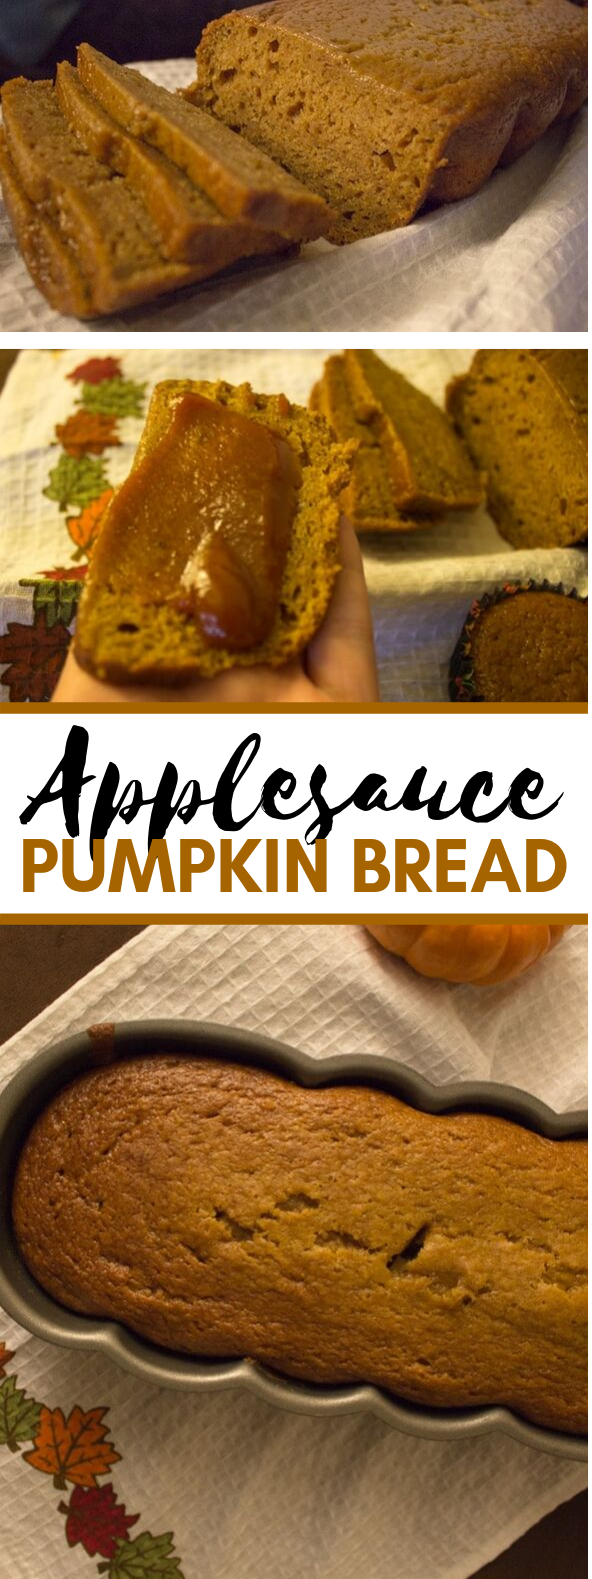 Applesauce pumpkin bread #familydinner #meals